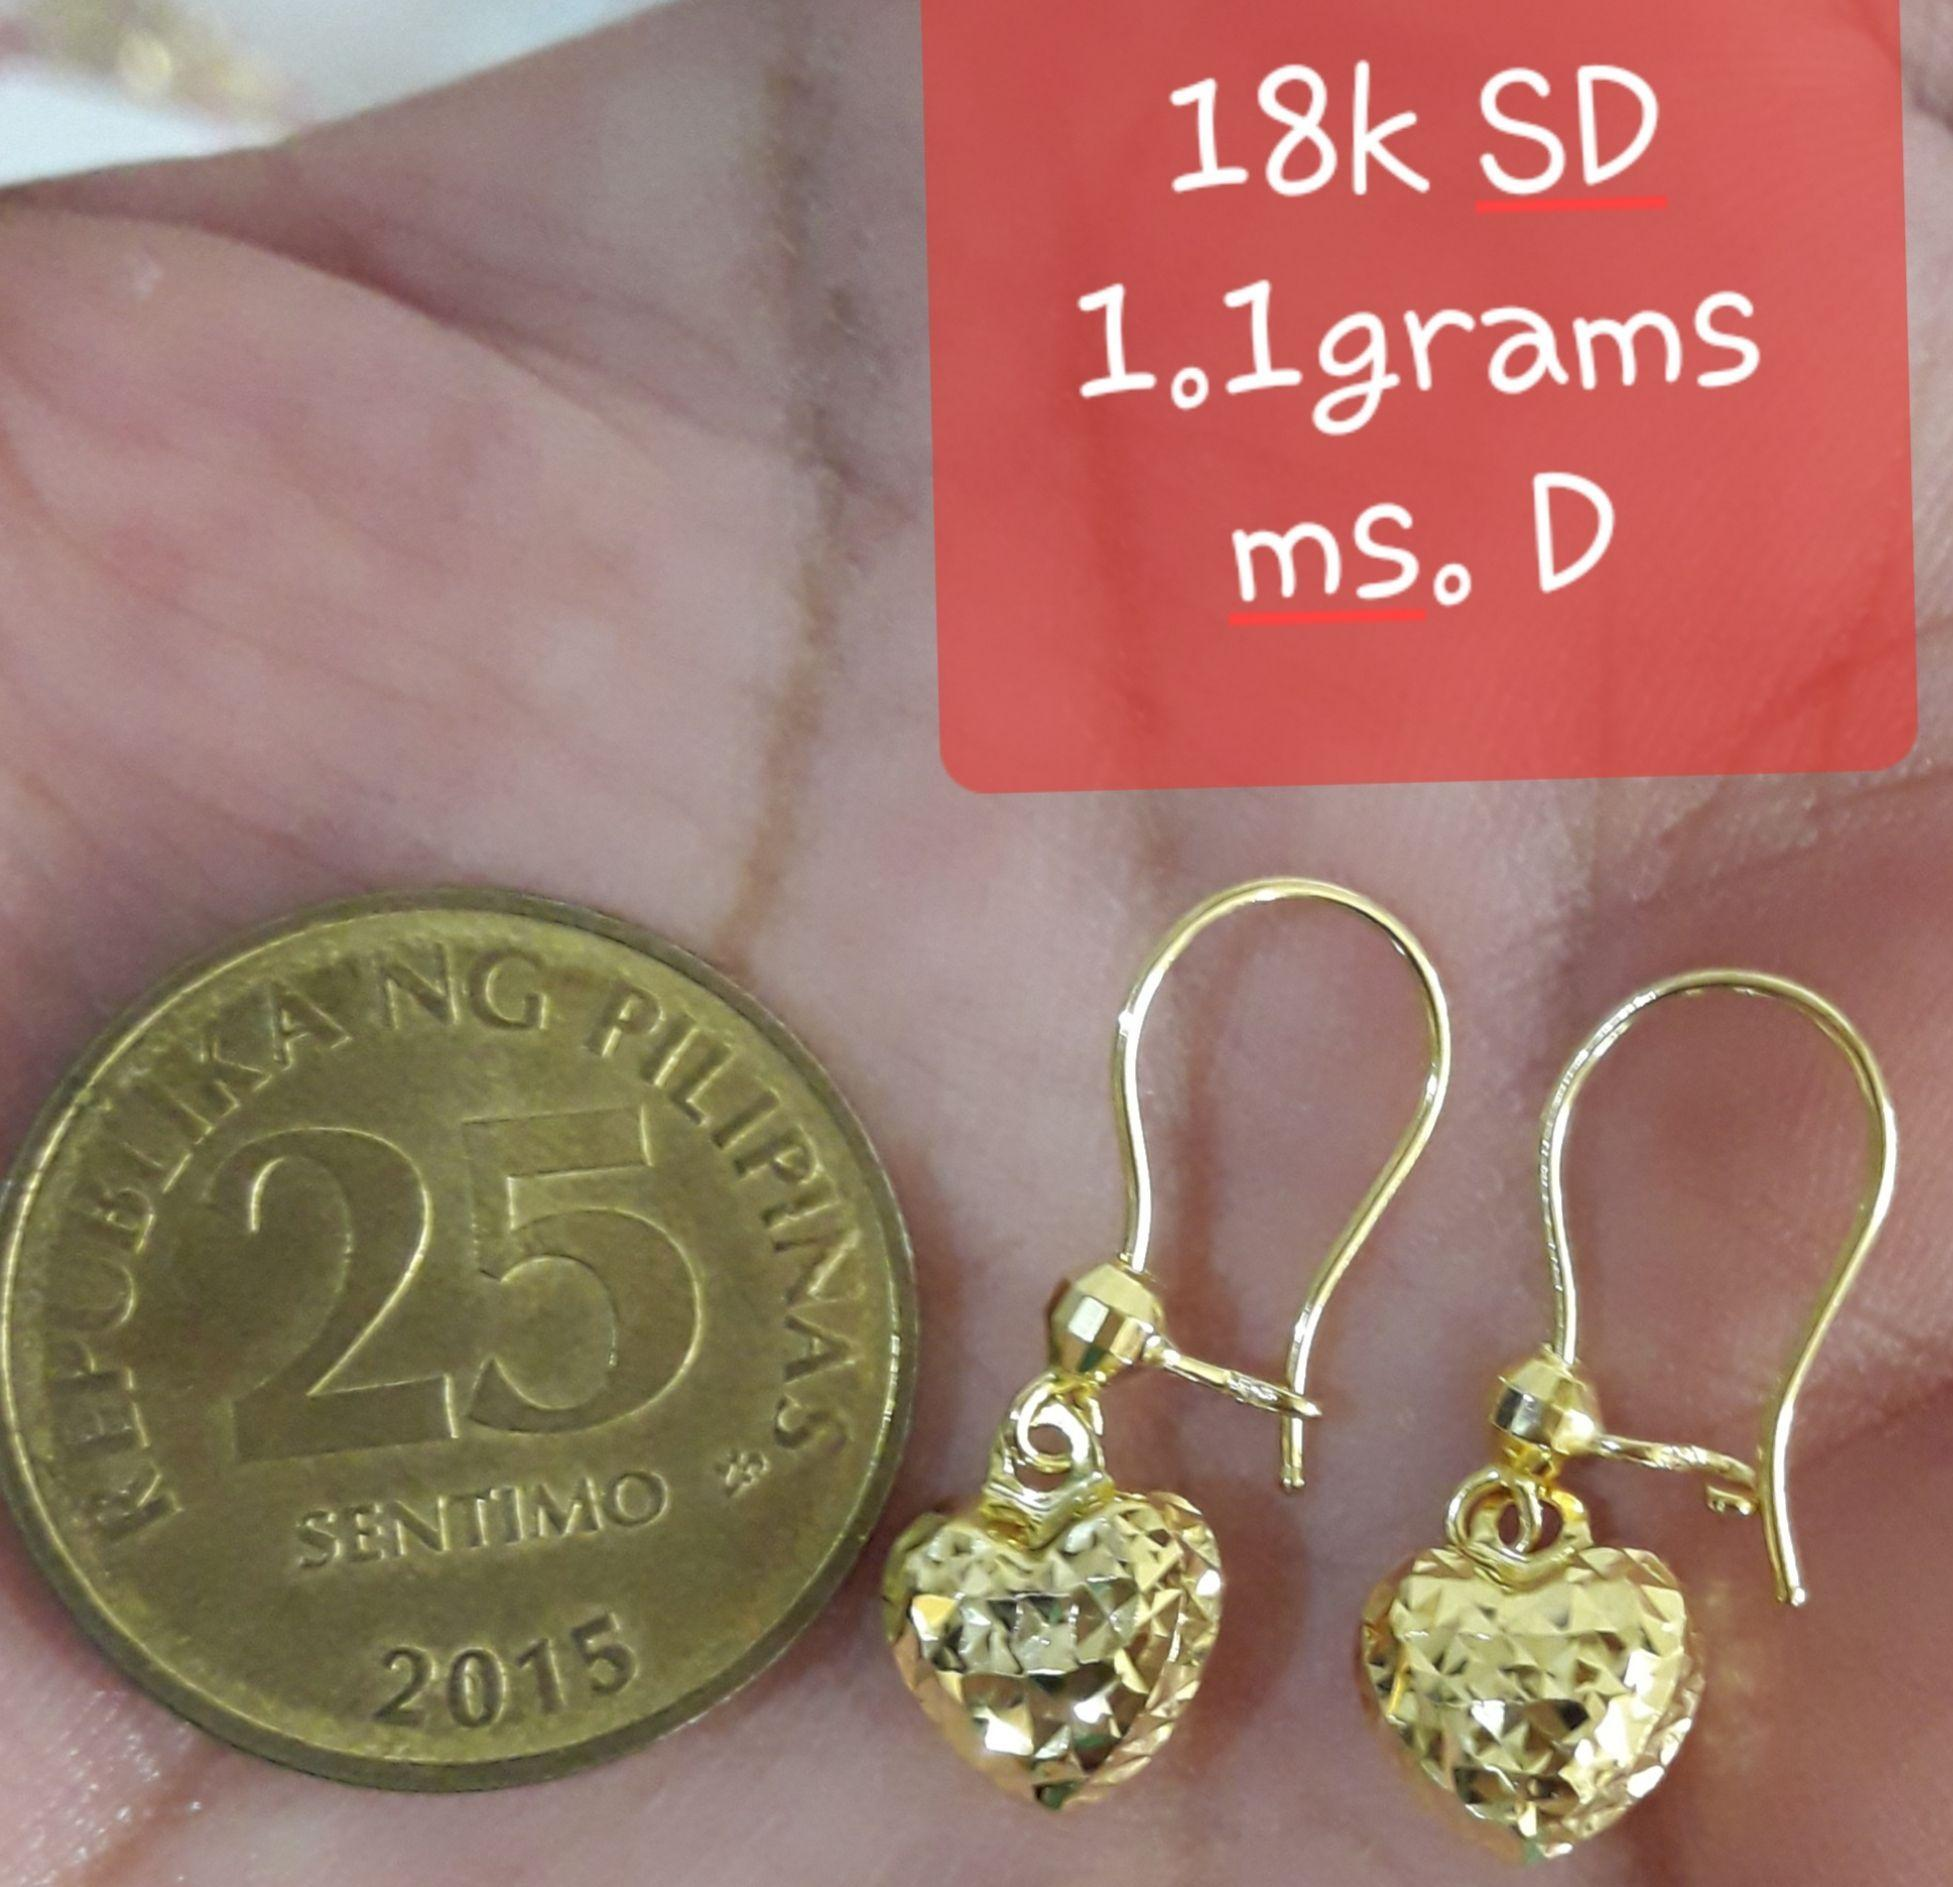 GOLD Philippines: GOLD price list - Necklaces, Rings, Earrings